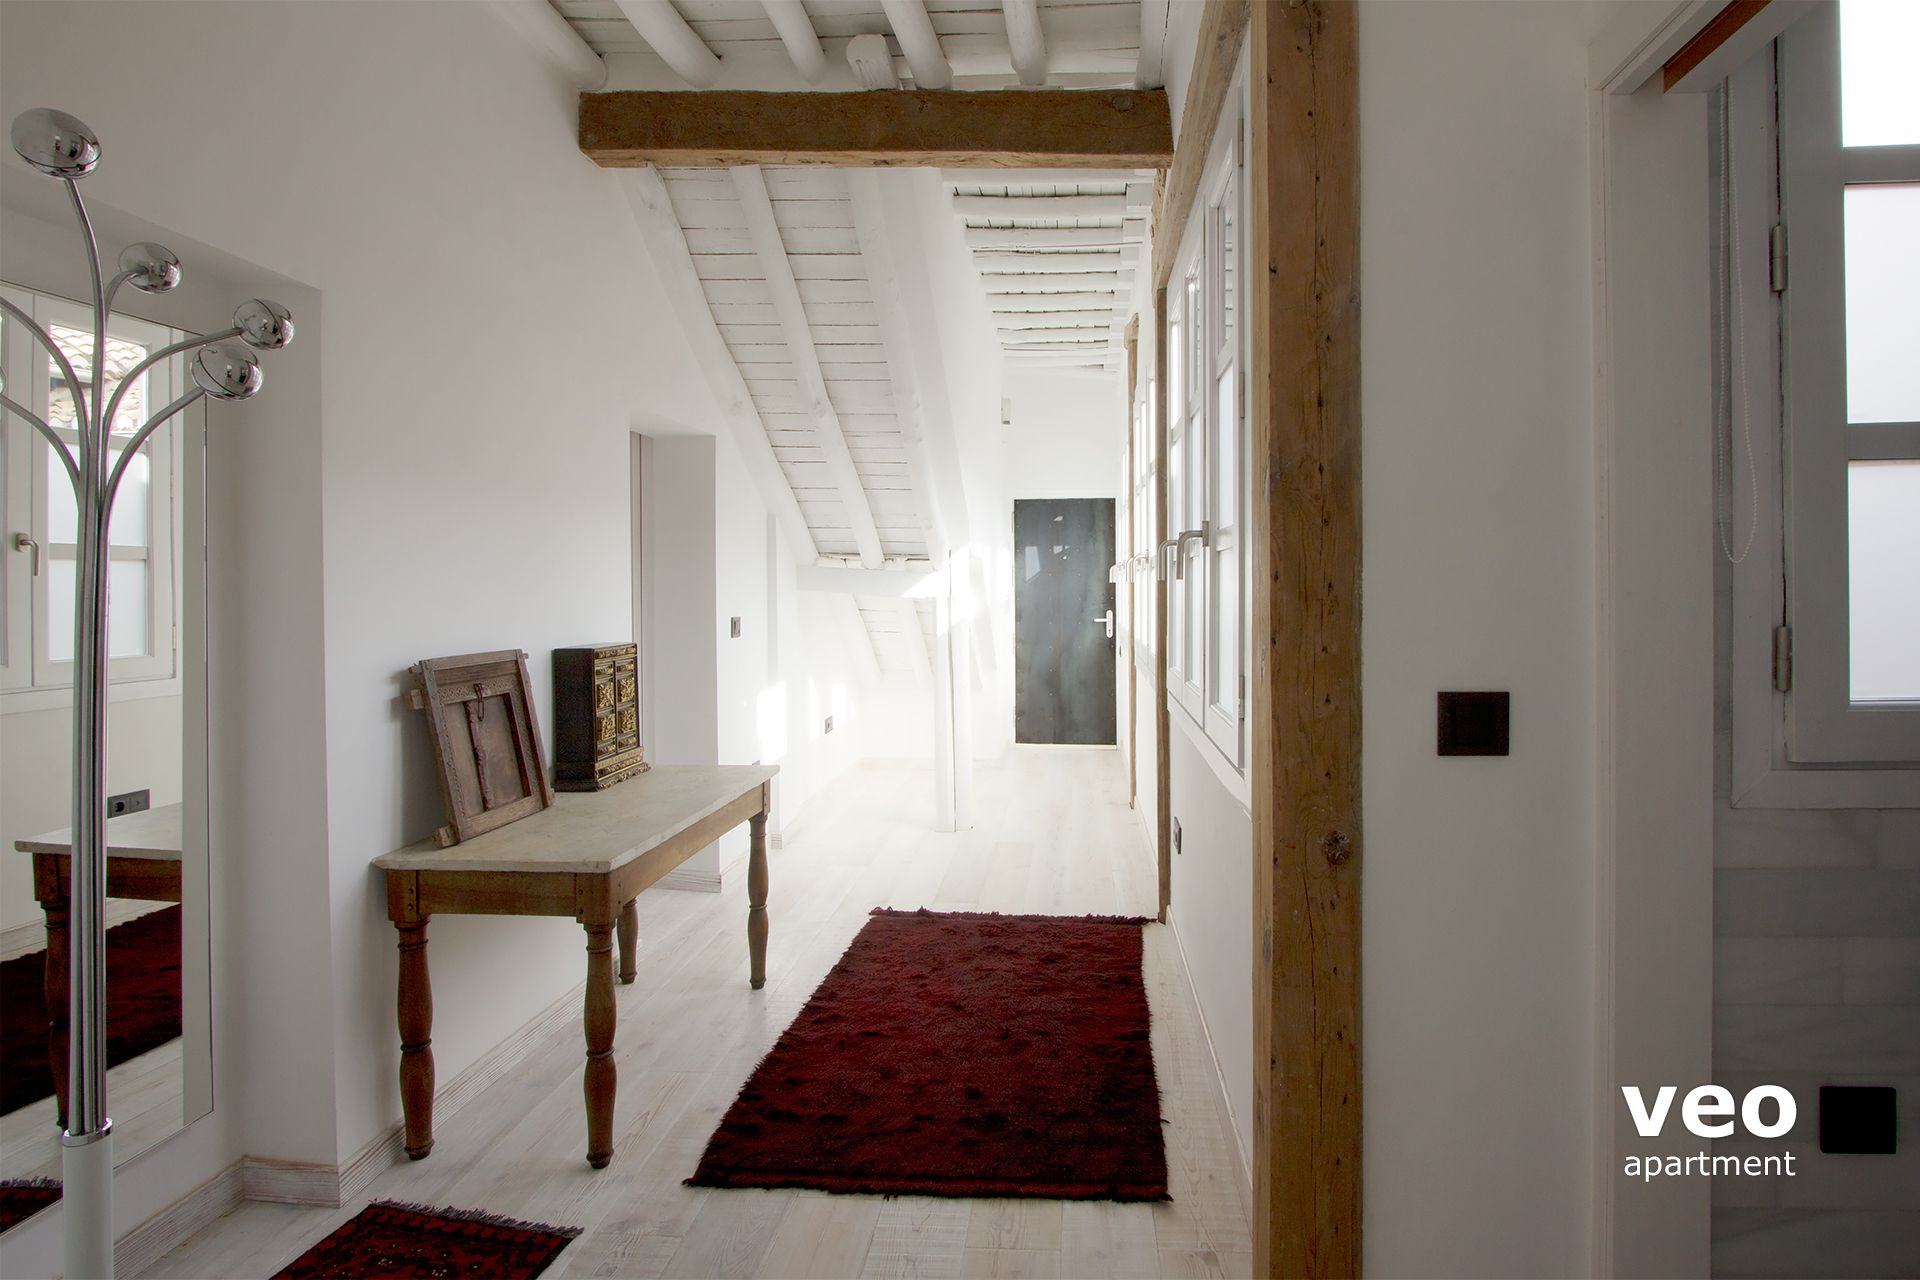 0228_carnero-veo-apartment-granada-10